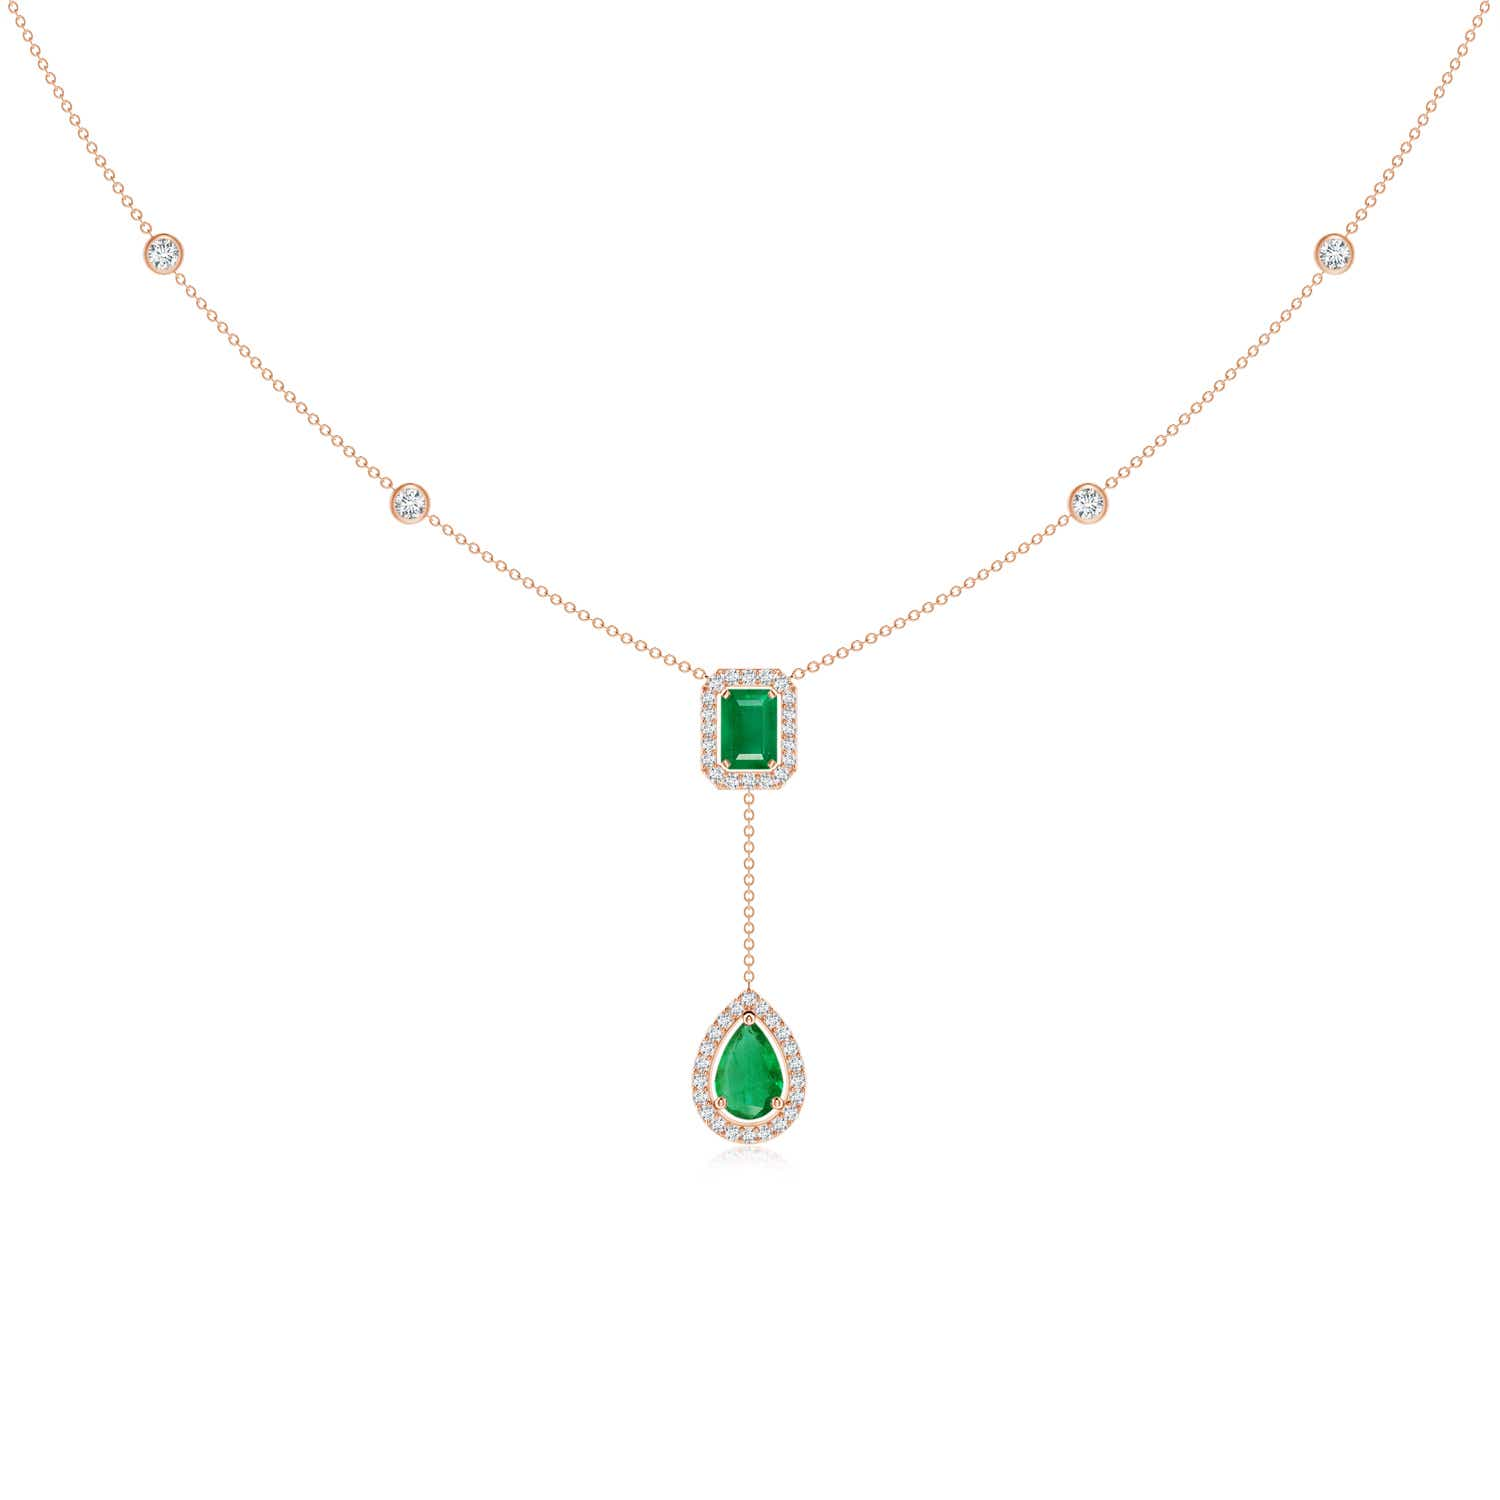 Emerald-Cut & Pear-Shaped Emerald Tie Necklace with Diamond